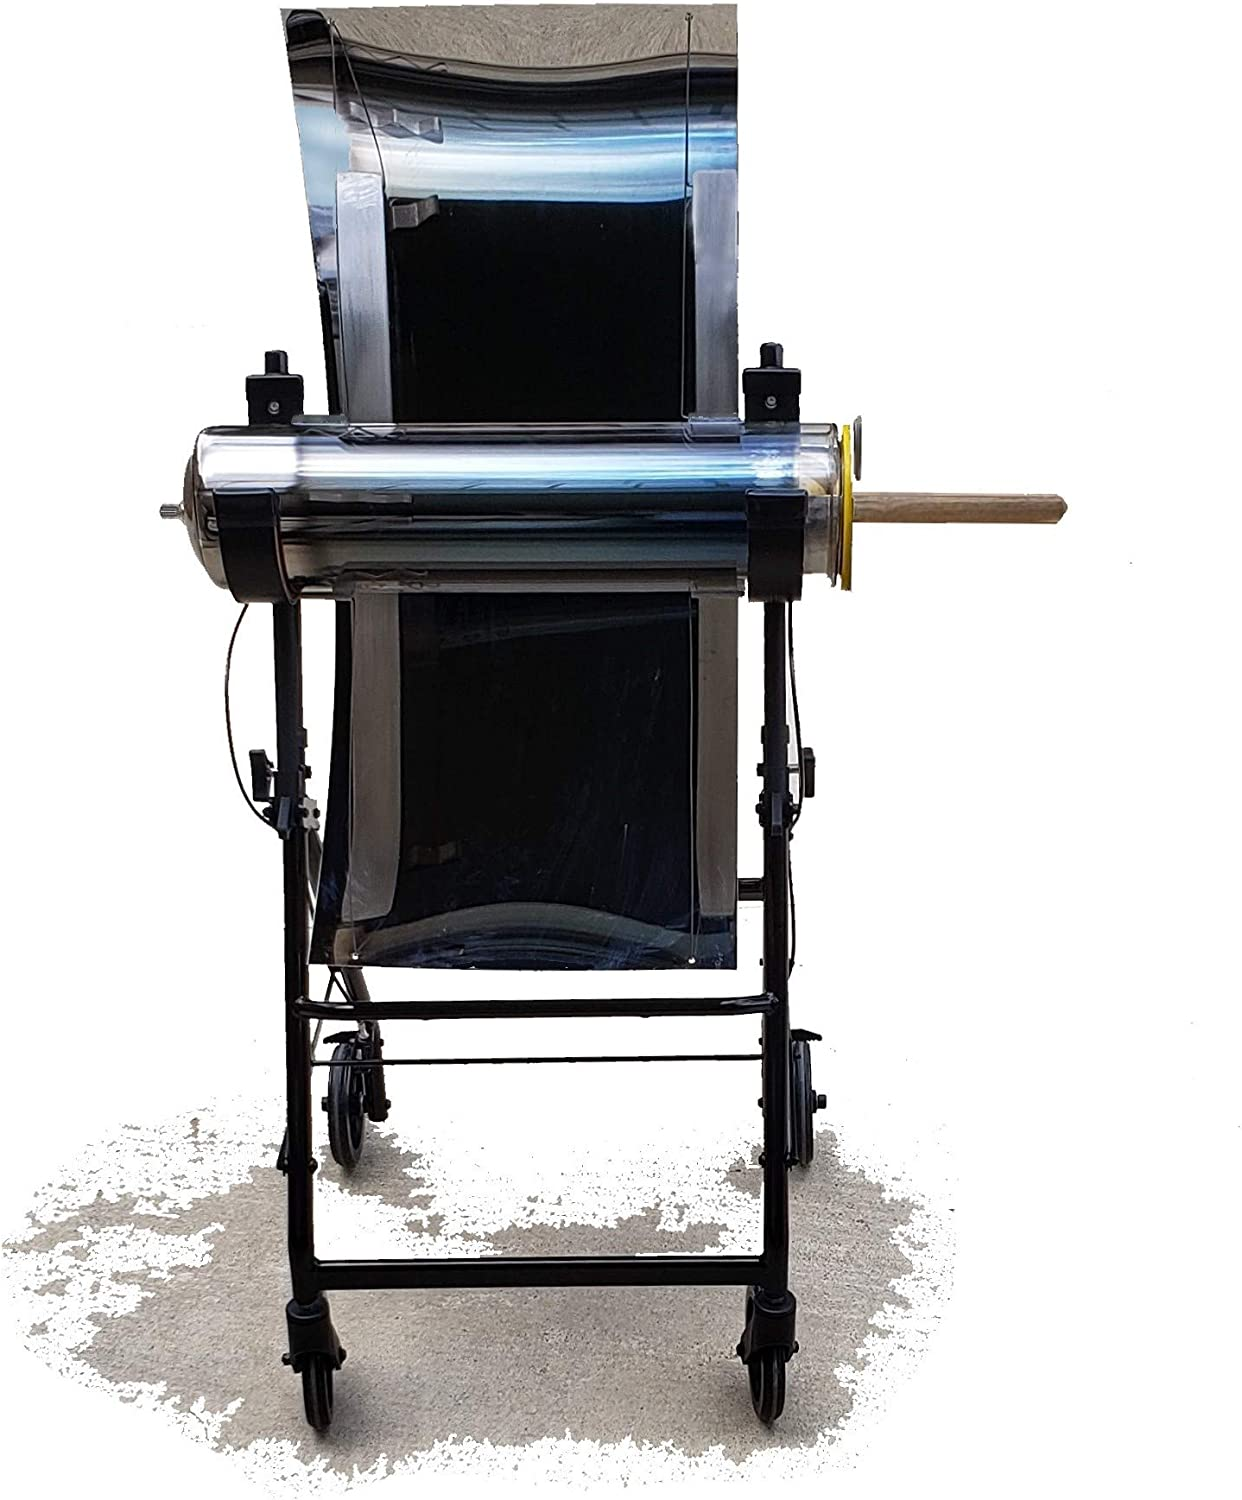 GRAFXSOLAR Solar Oven, The Largest & Hottest Evacuated Solar Oven! Over 500°F